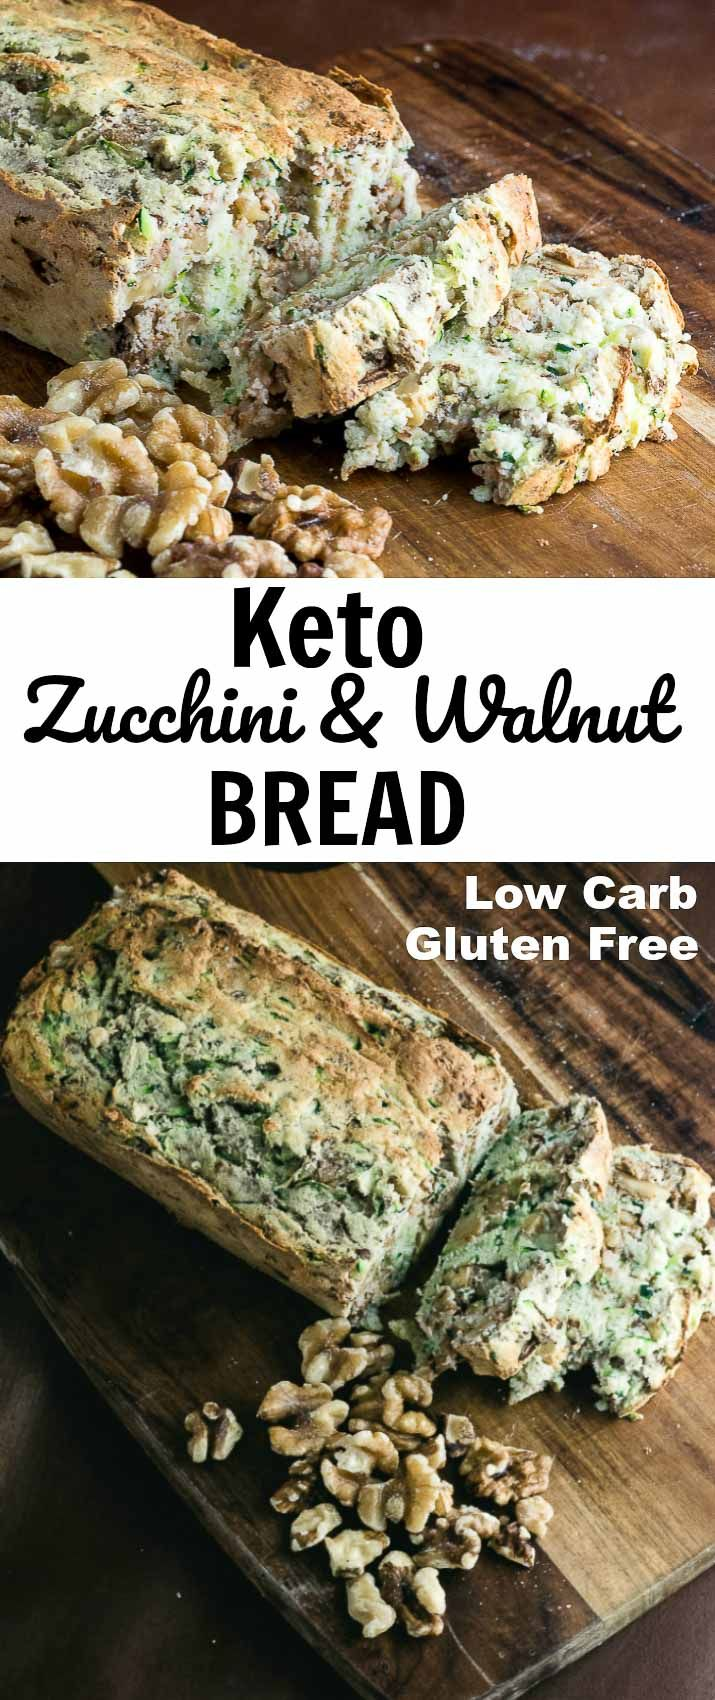 Keto Zucchini and Walnut Bread- Low Carb & Gluten Free